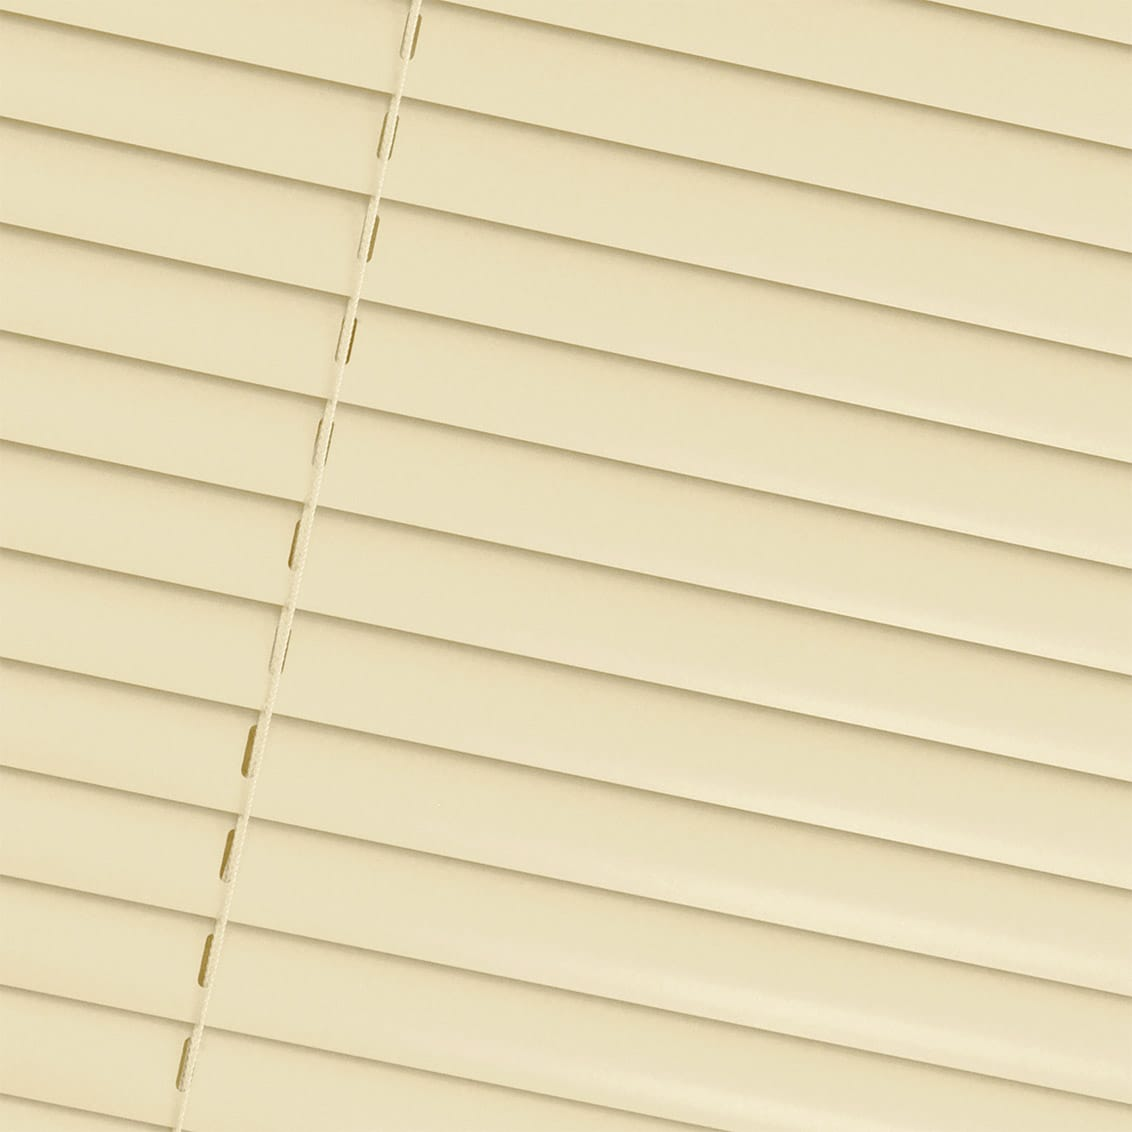 Off white Color Venetians blinds